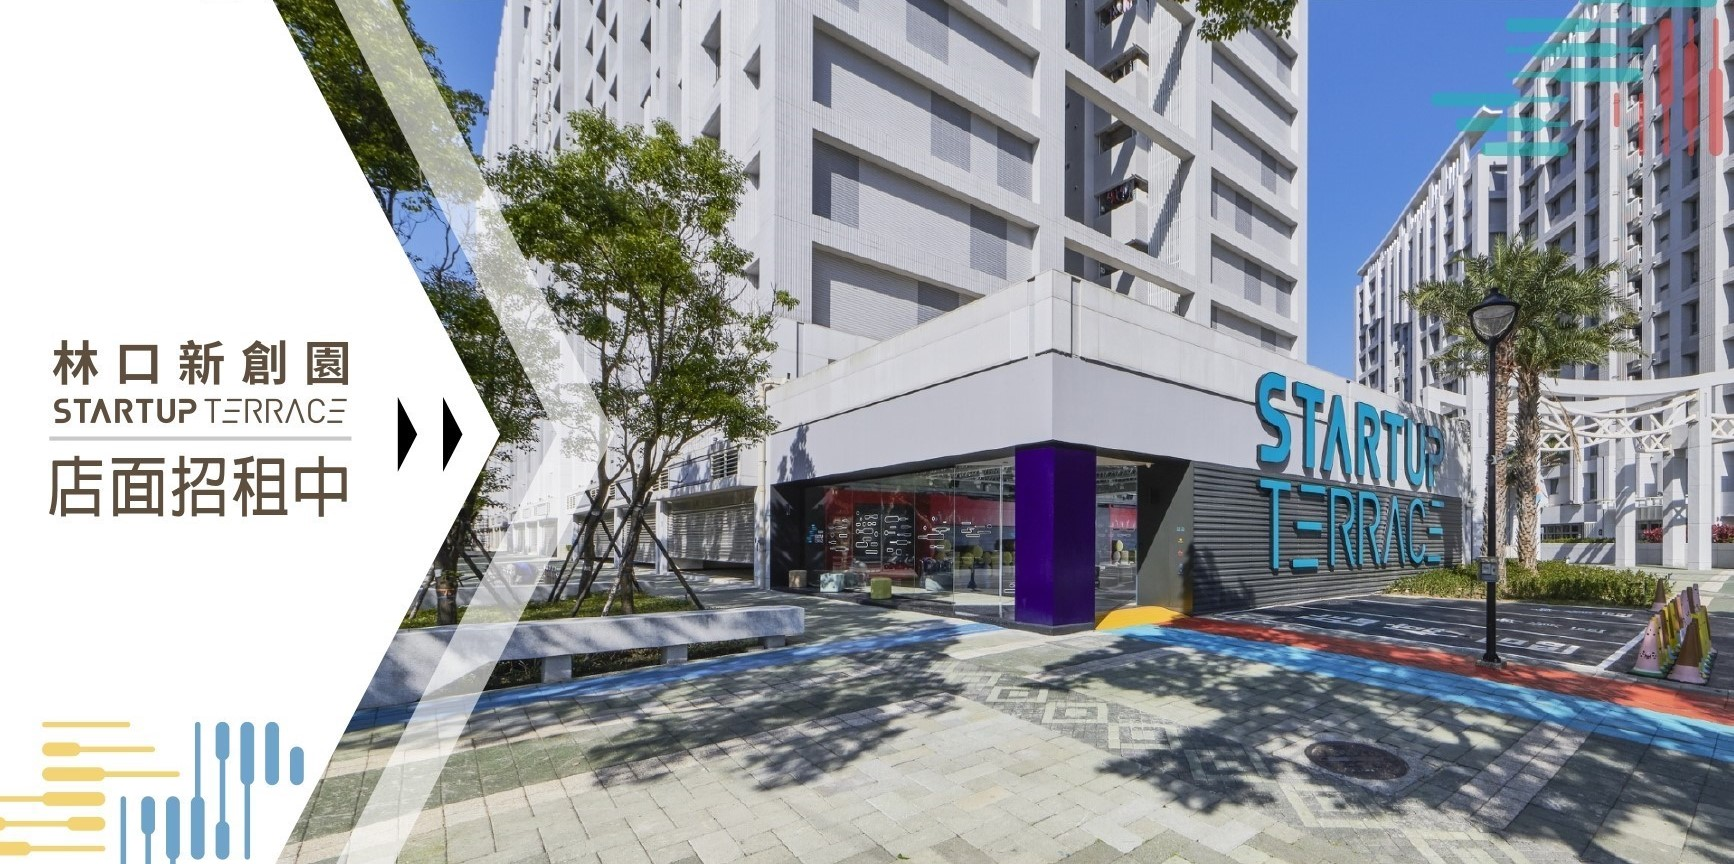 Startup Terrace 1st Floor Store Spaces for Rent